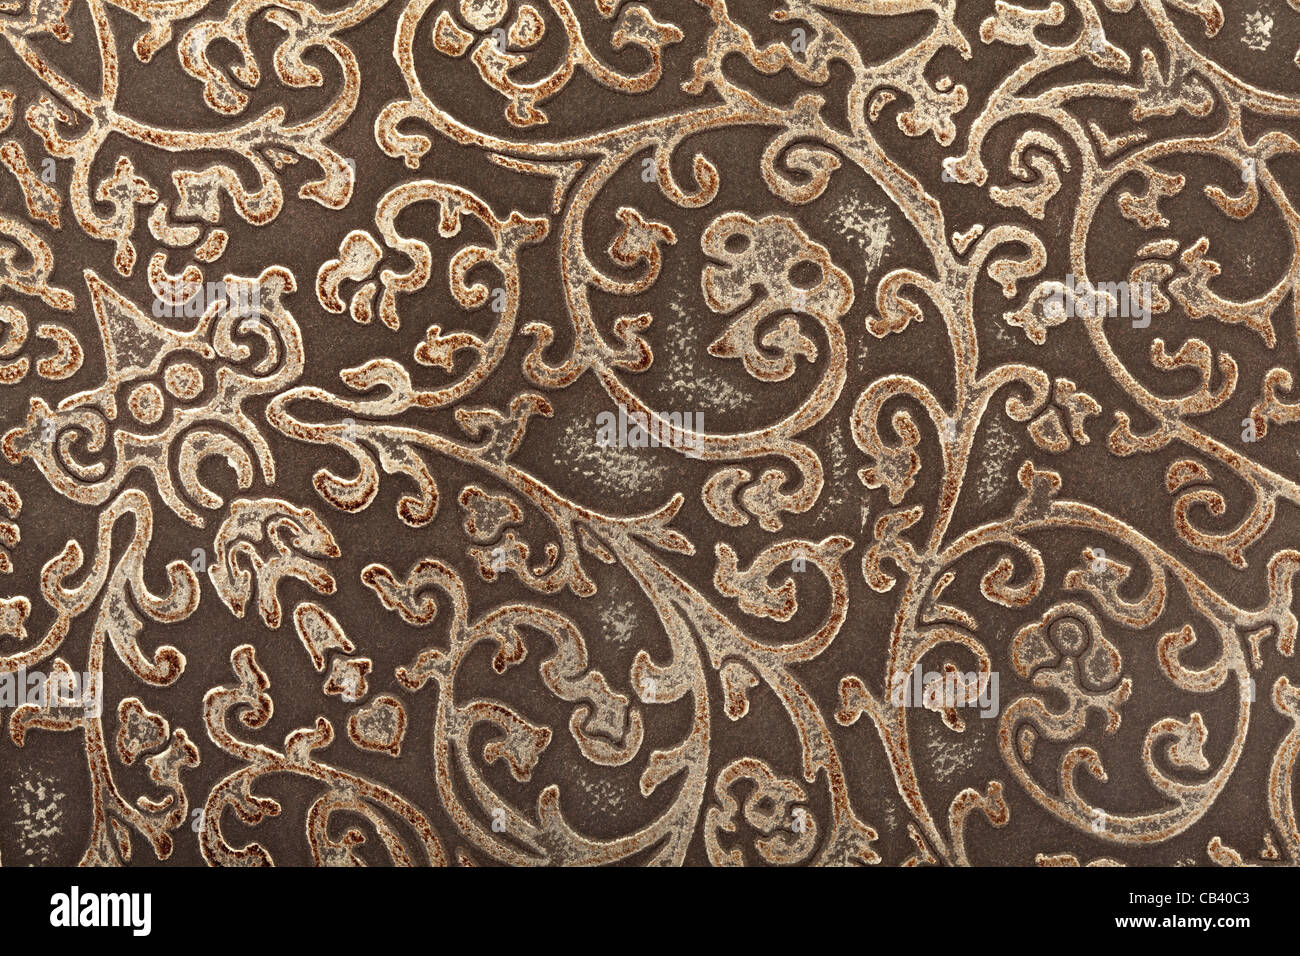 Leather floral pattern background - Stock Image